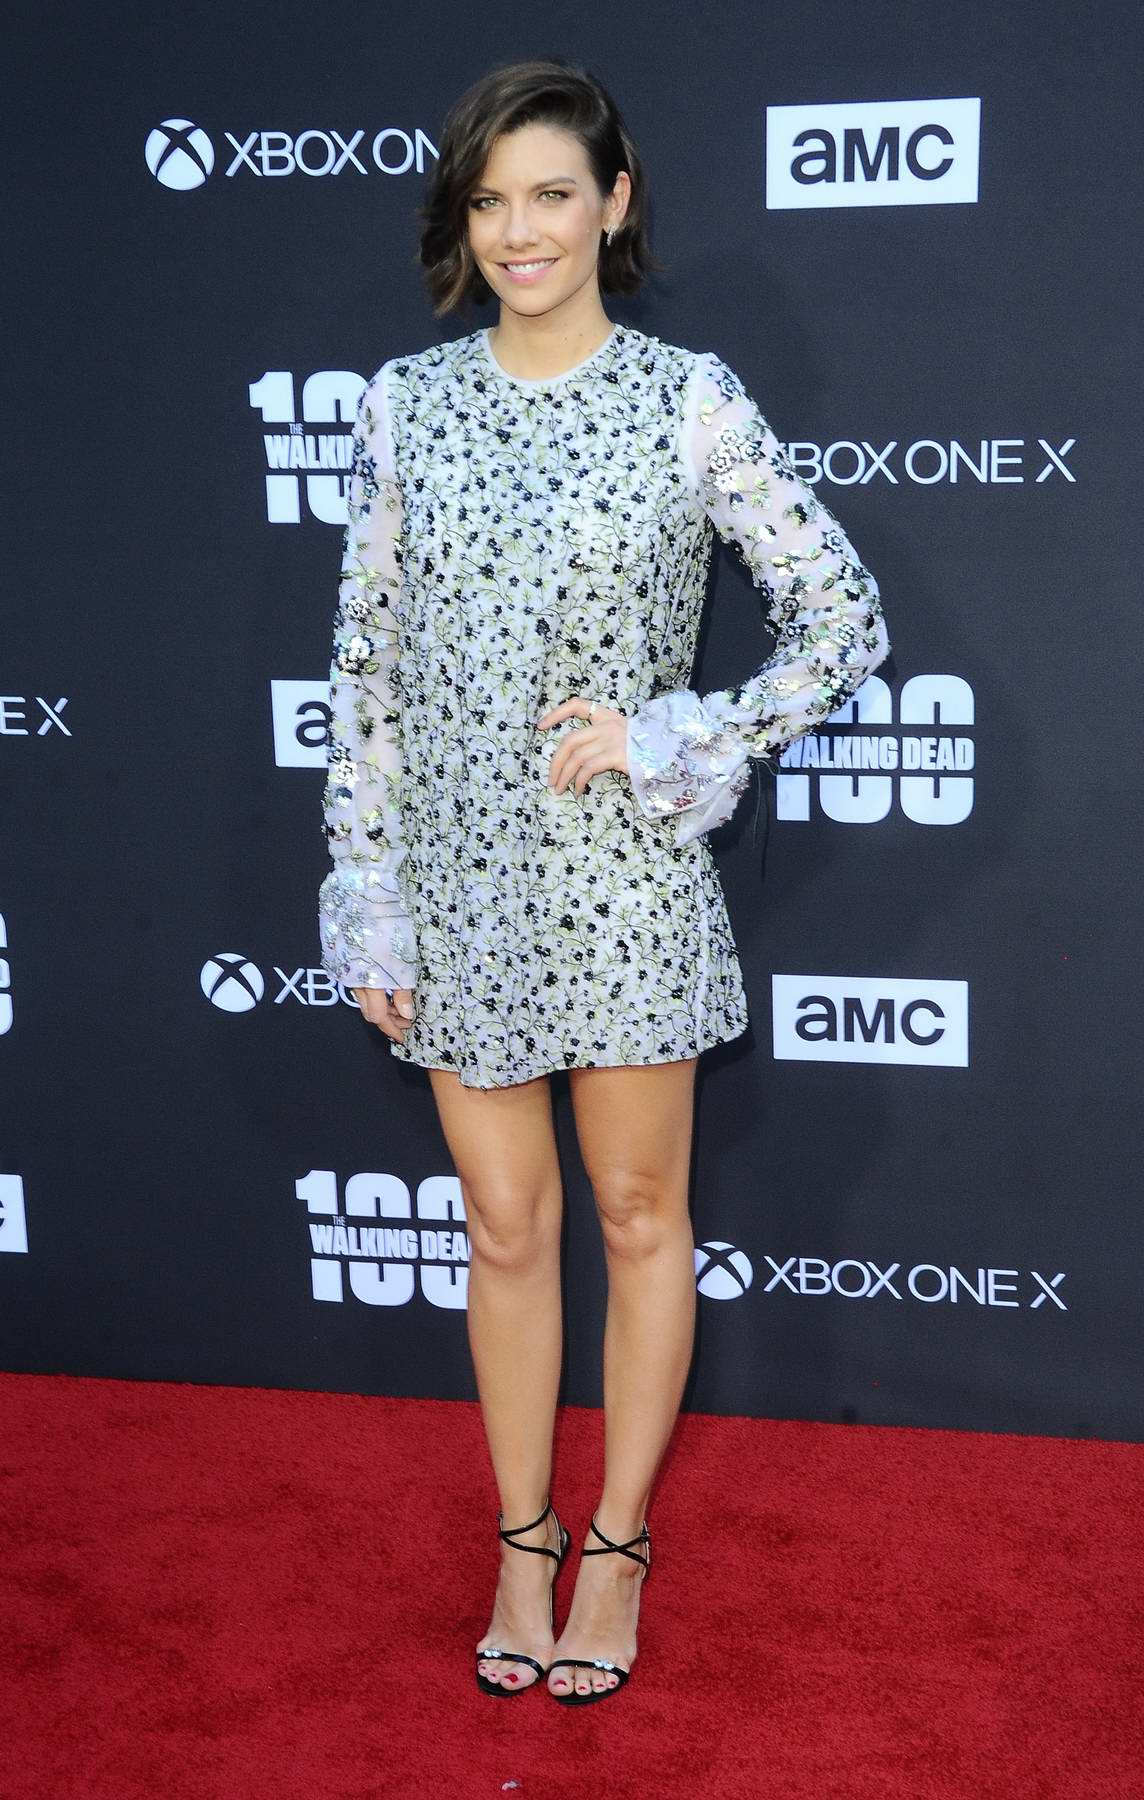 Lauren Cohan at The Walking Dead 100th episode premiere and party in Los Angeles